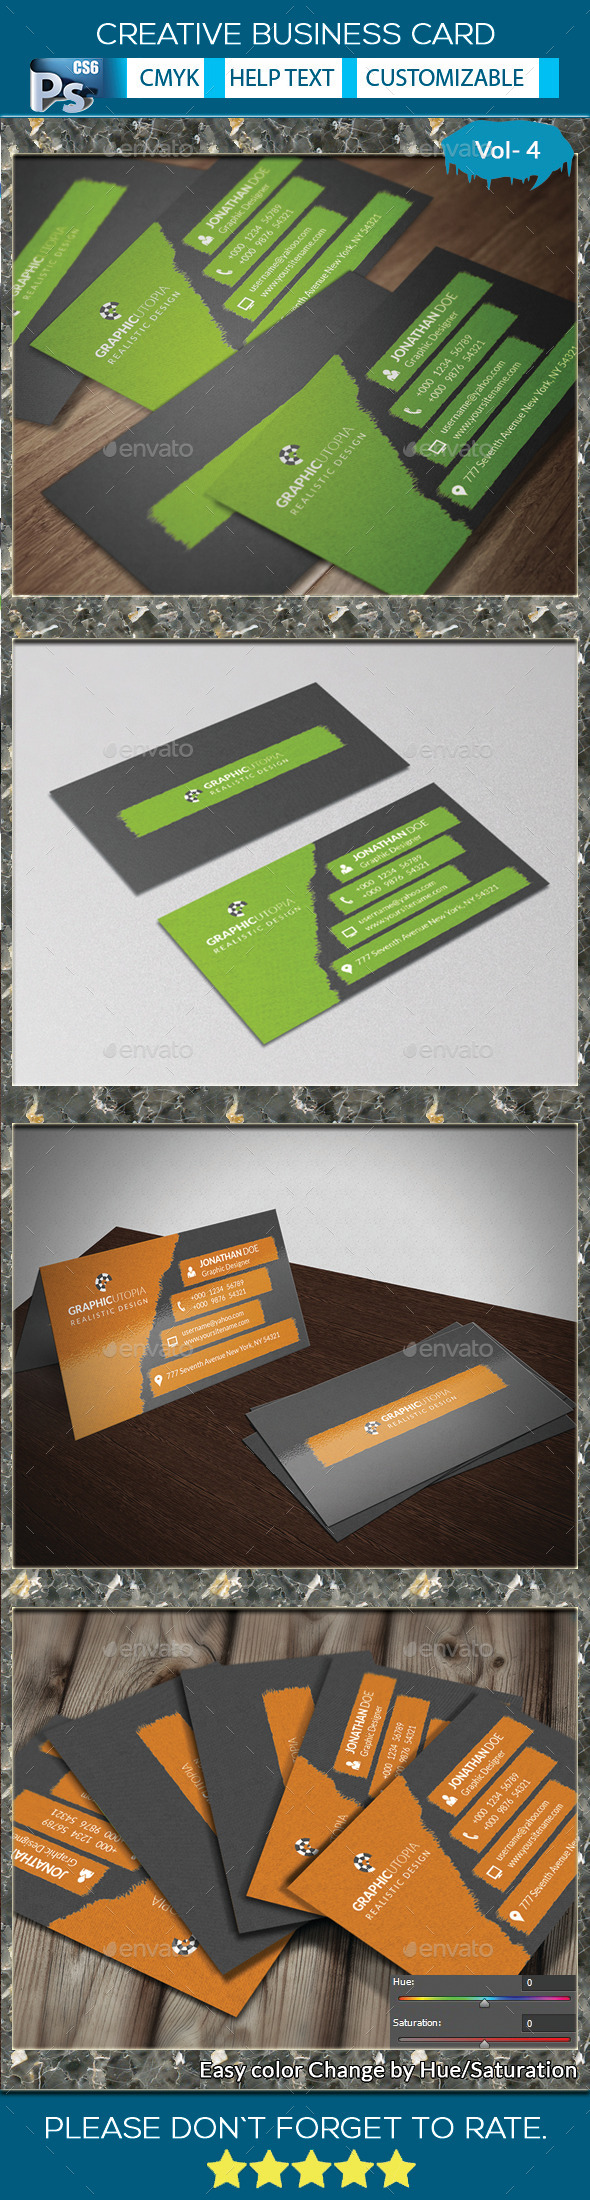 Creative Business Card vol-4